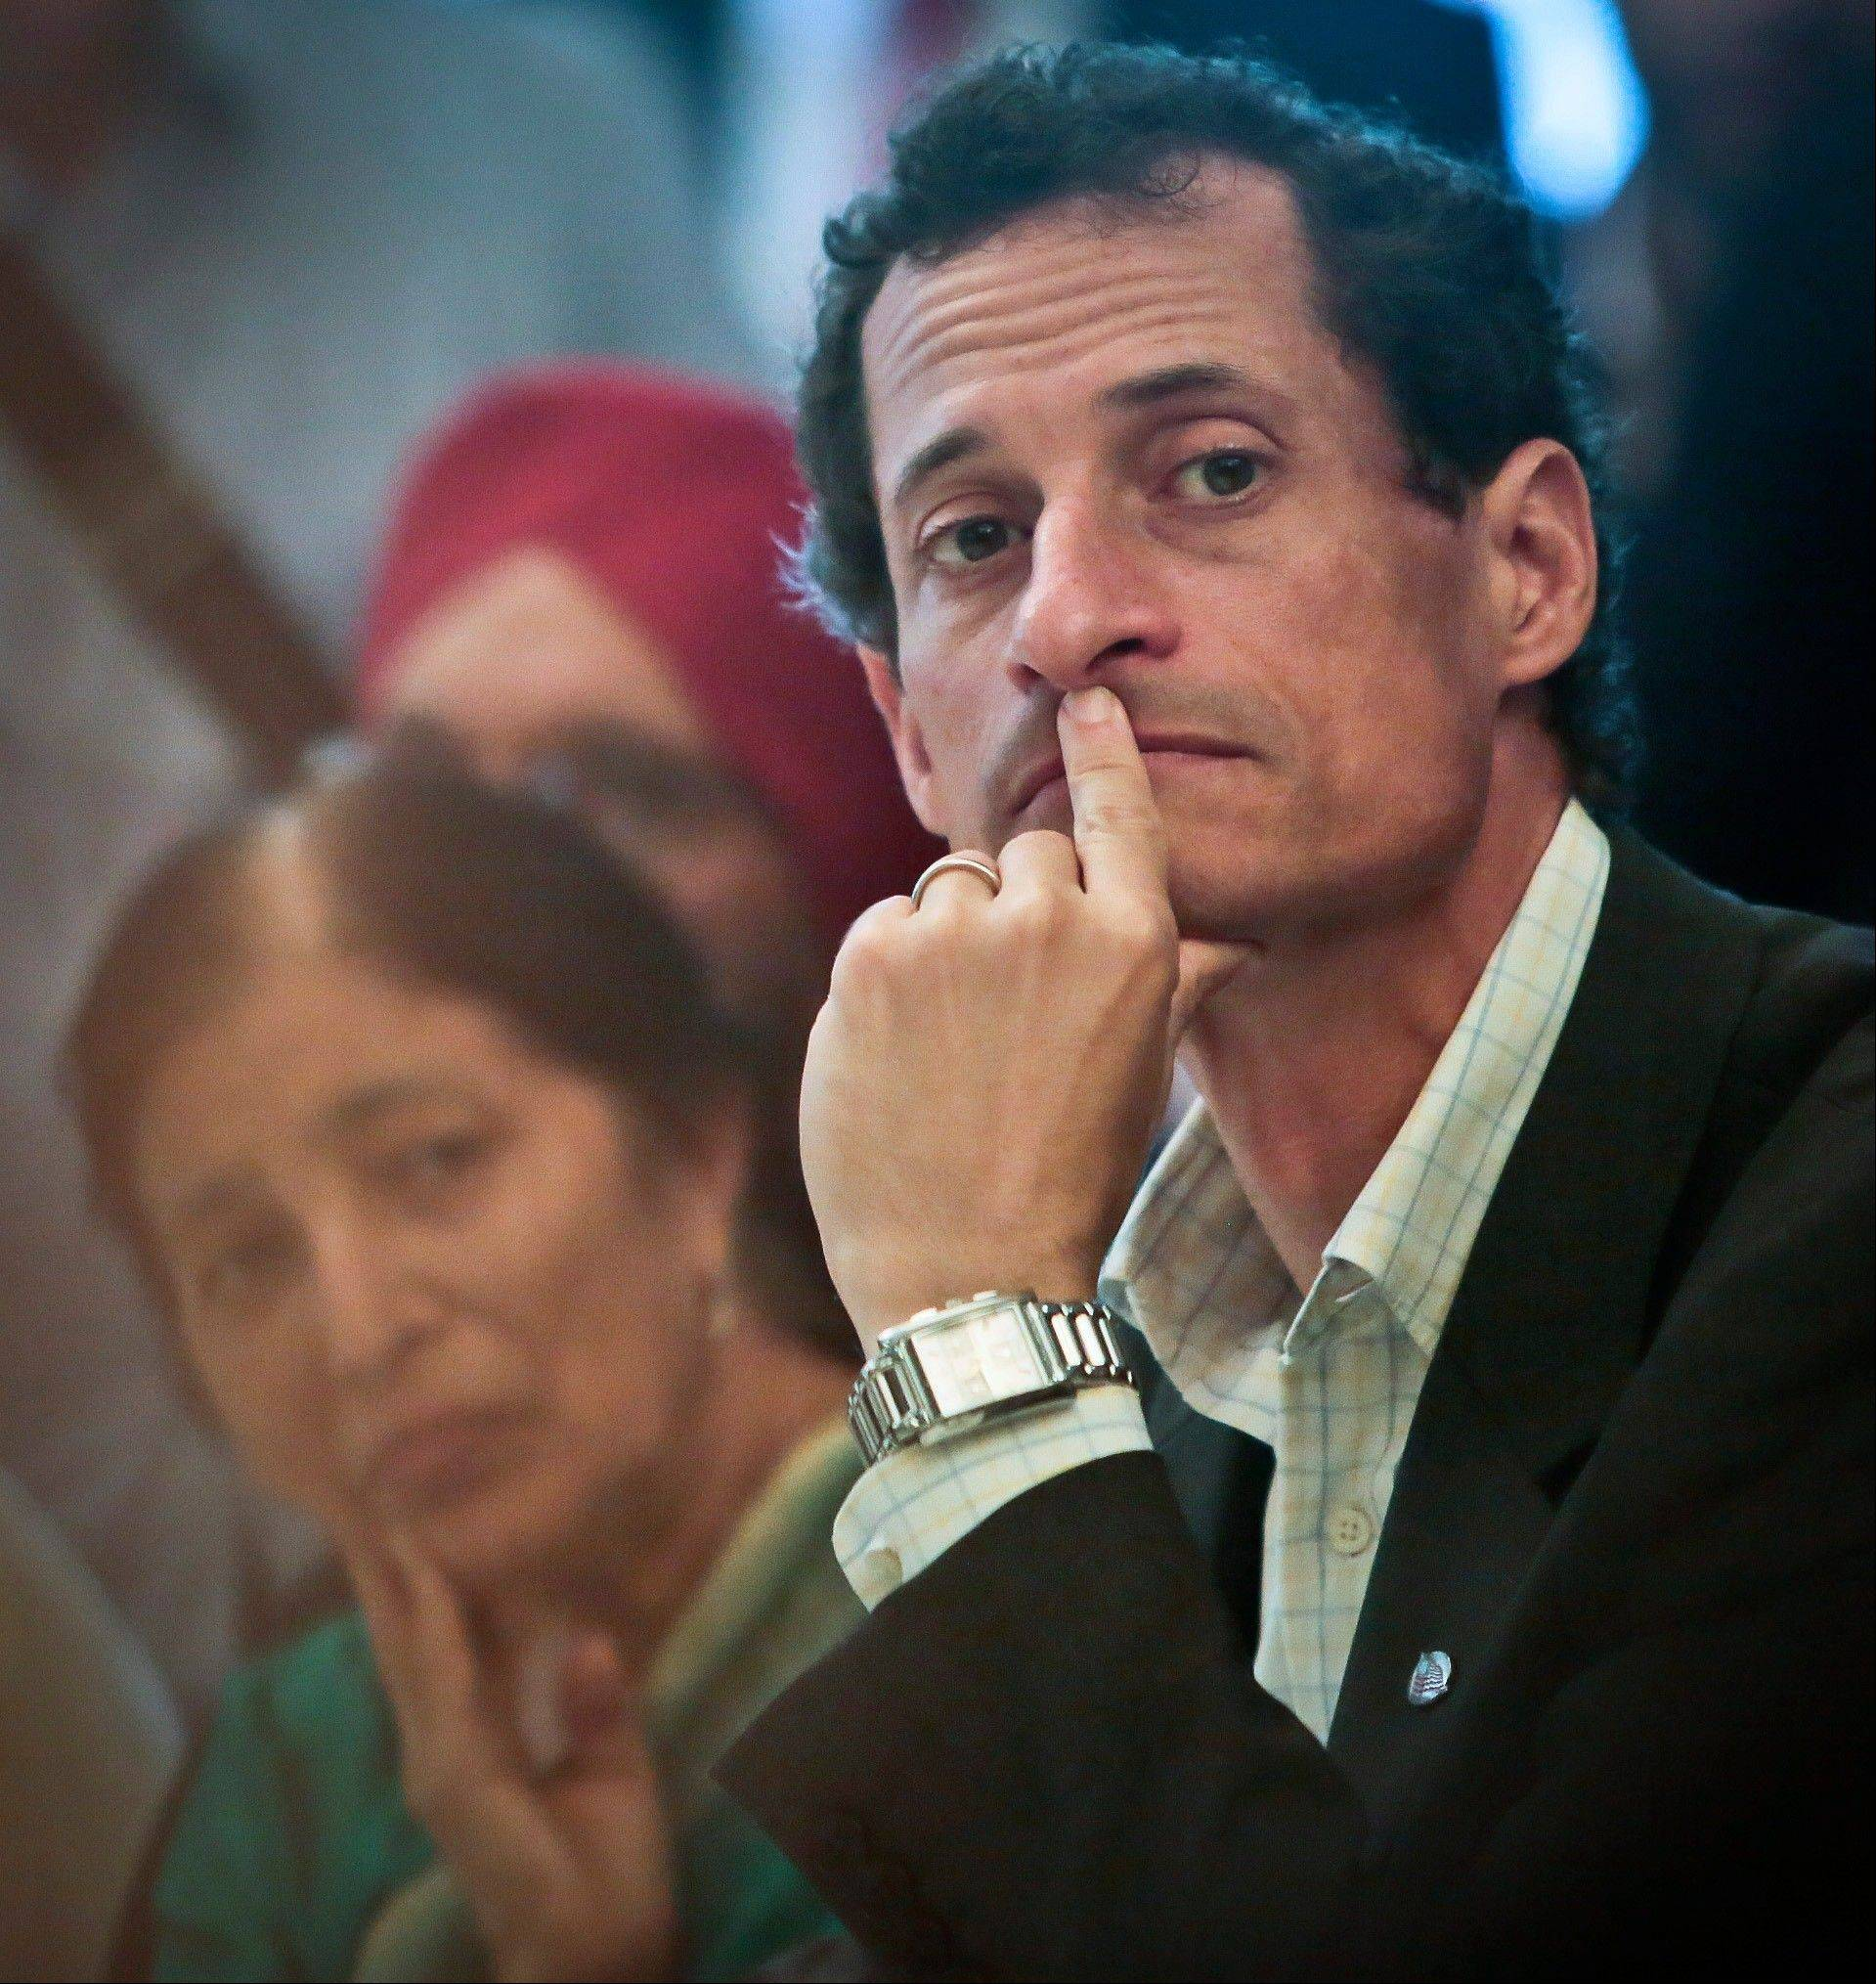 New York mayoral candidate Anthony Weiner, center, listens during a meeting \Friday with leaders from the South and East Asian communities in Queens.